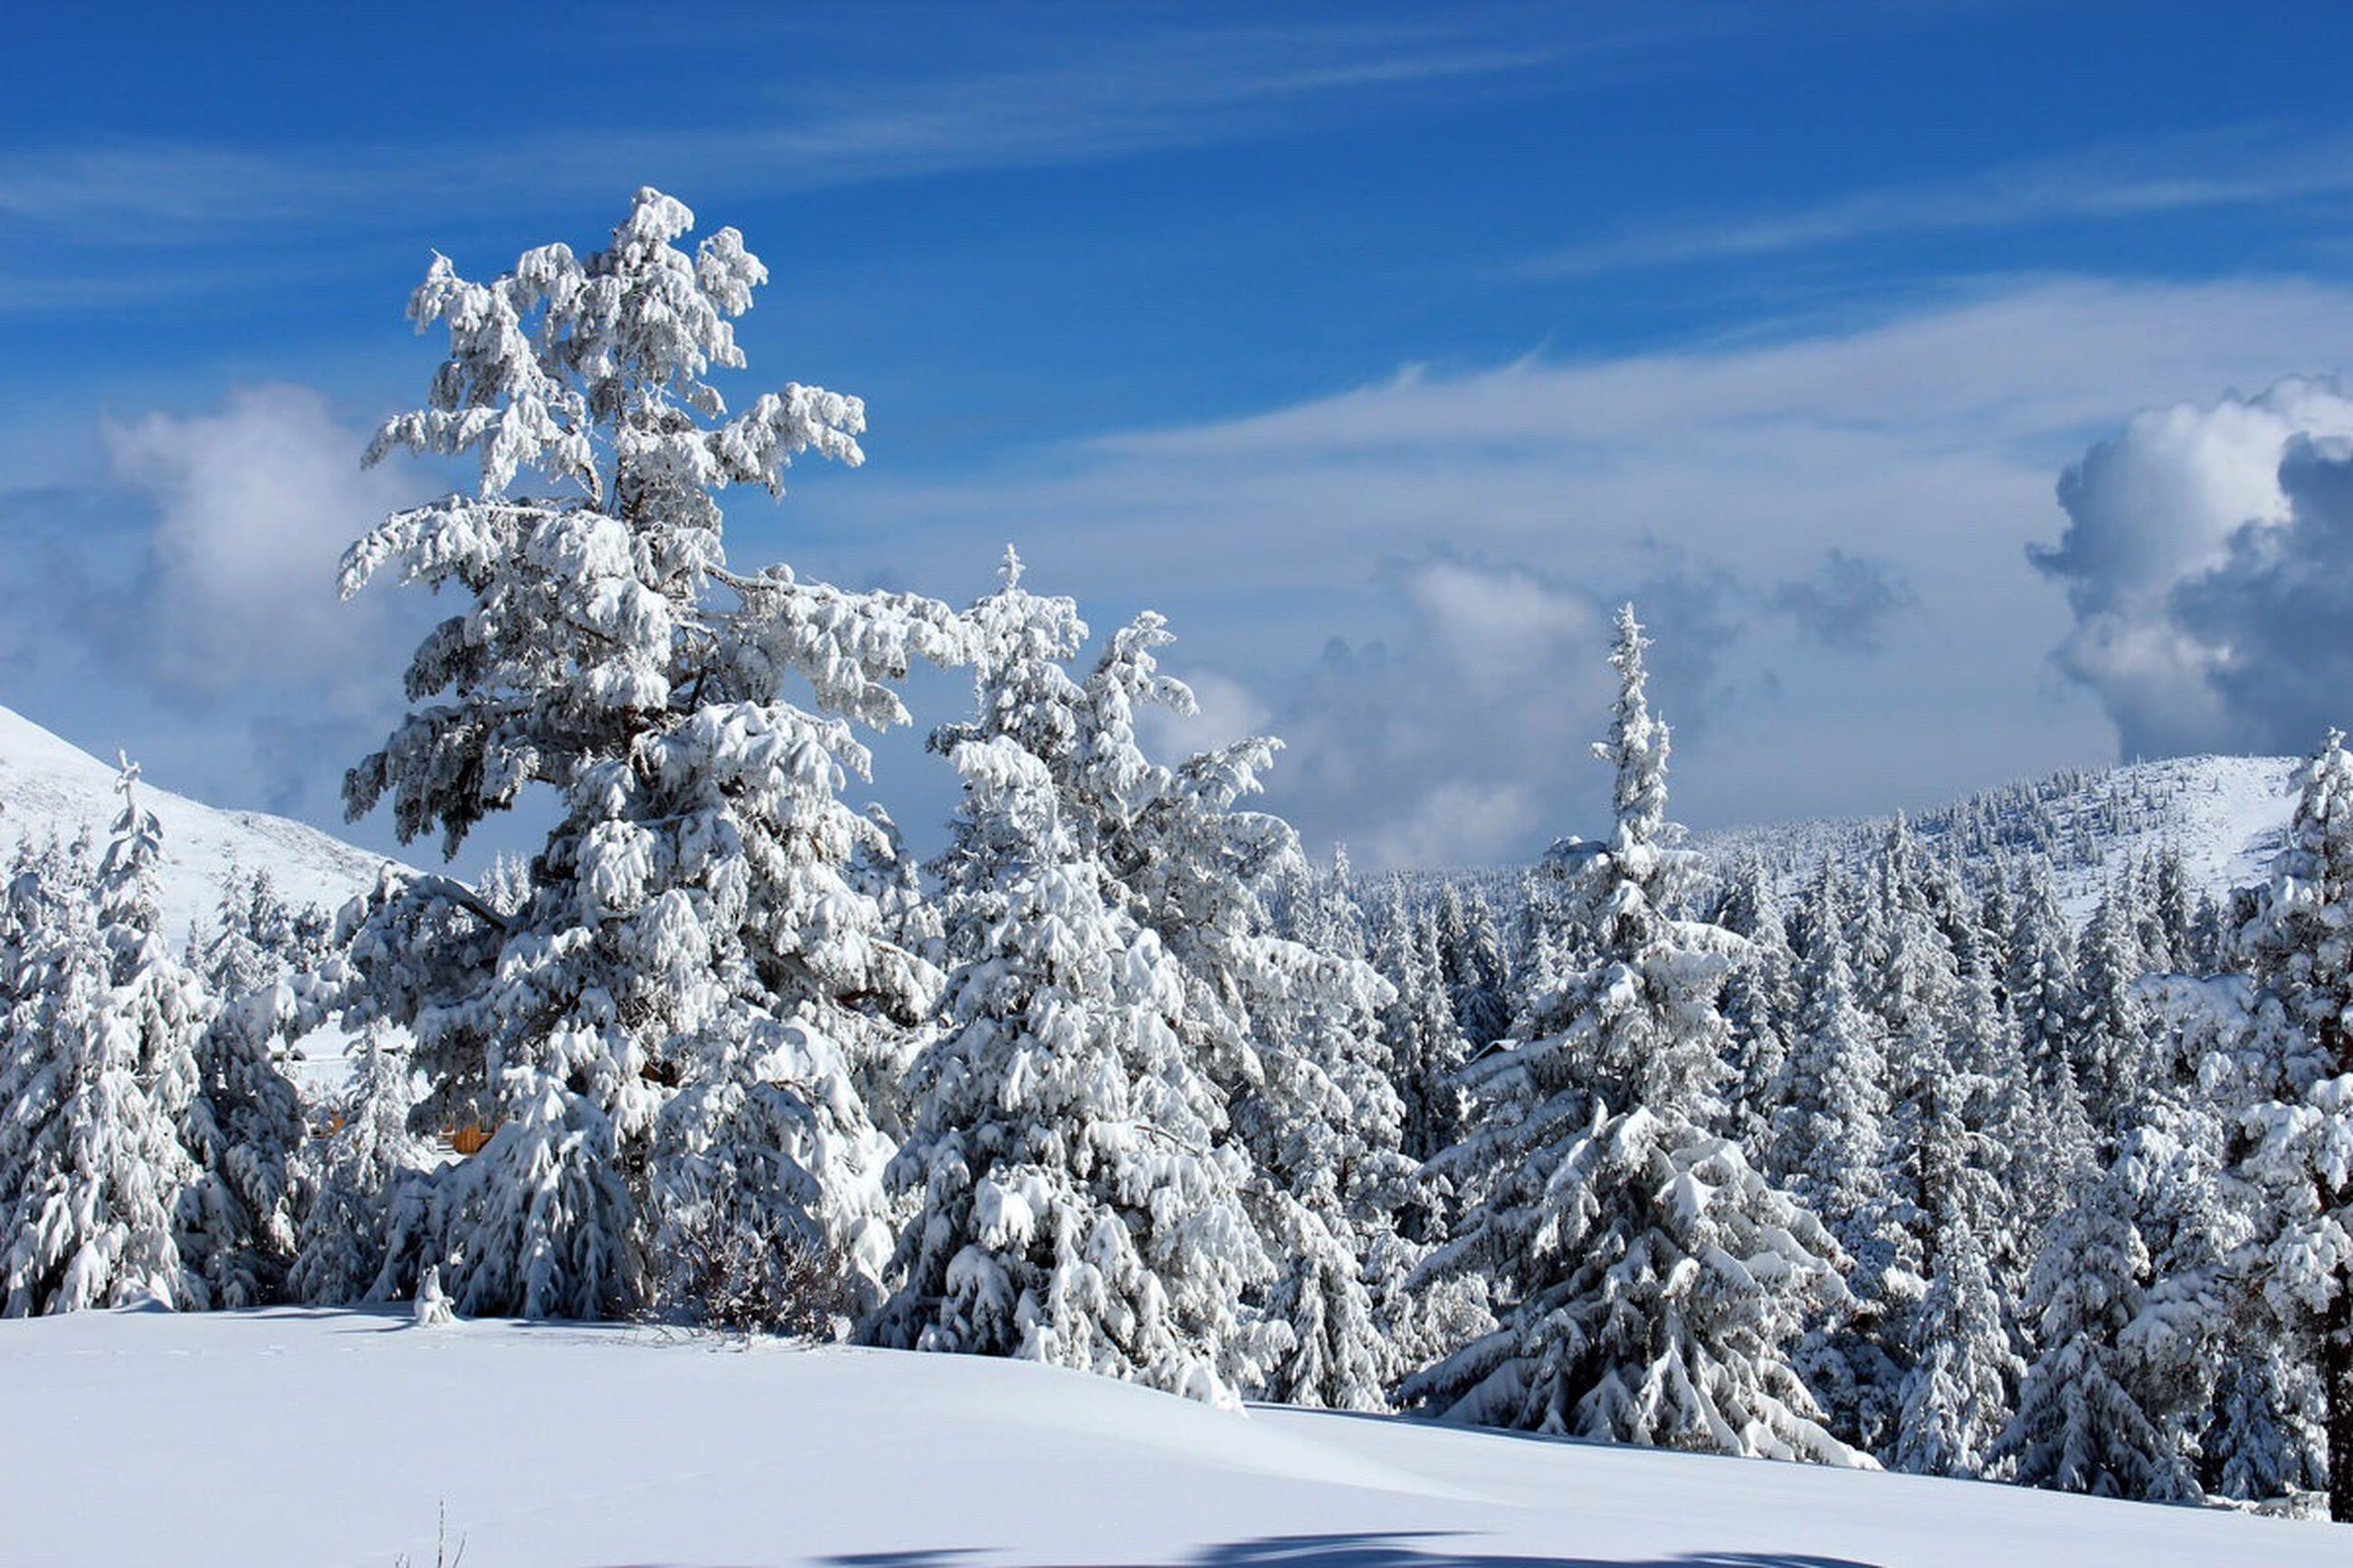 winter, cold temperature, snow, season, tree, weather, tranquil scene, scenics, white color, landscape, sky, nature, tranquility, non-urban scene, beauty in nature, covering, majestic, mountain, pine tree, cloud - sky, travel destinations, spruce tree, solitude, remote, outdoors, deep snow, day, tourism, woodland, tall - high